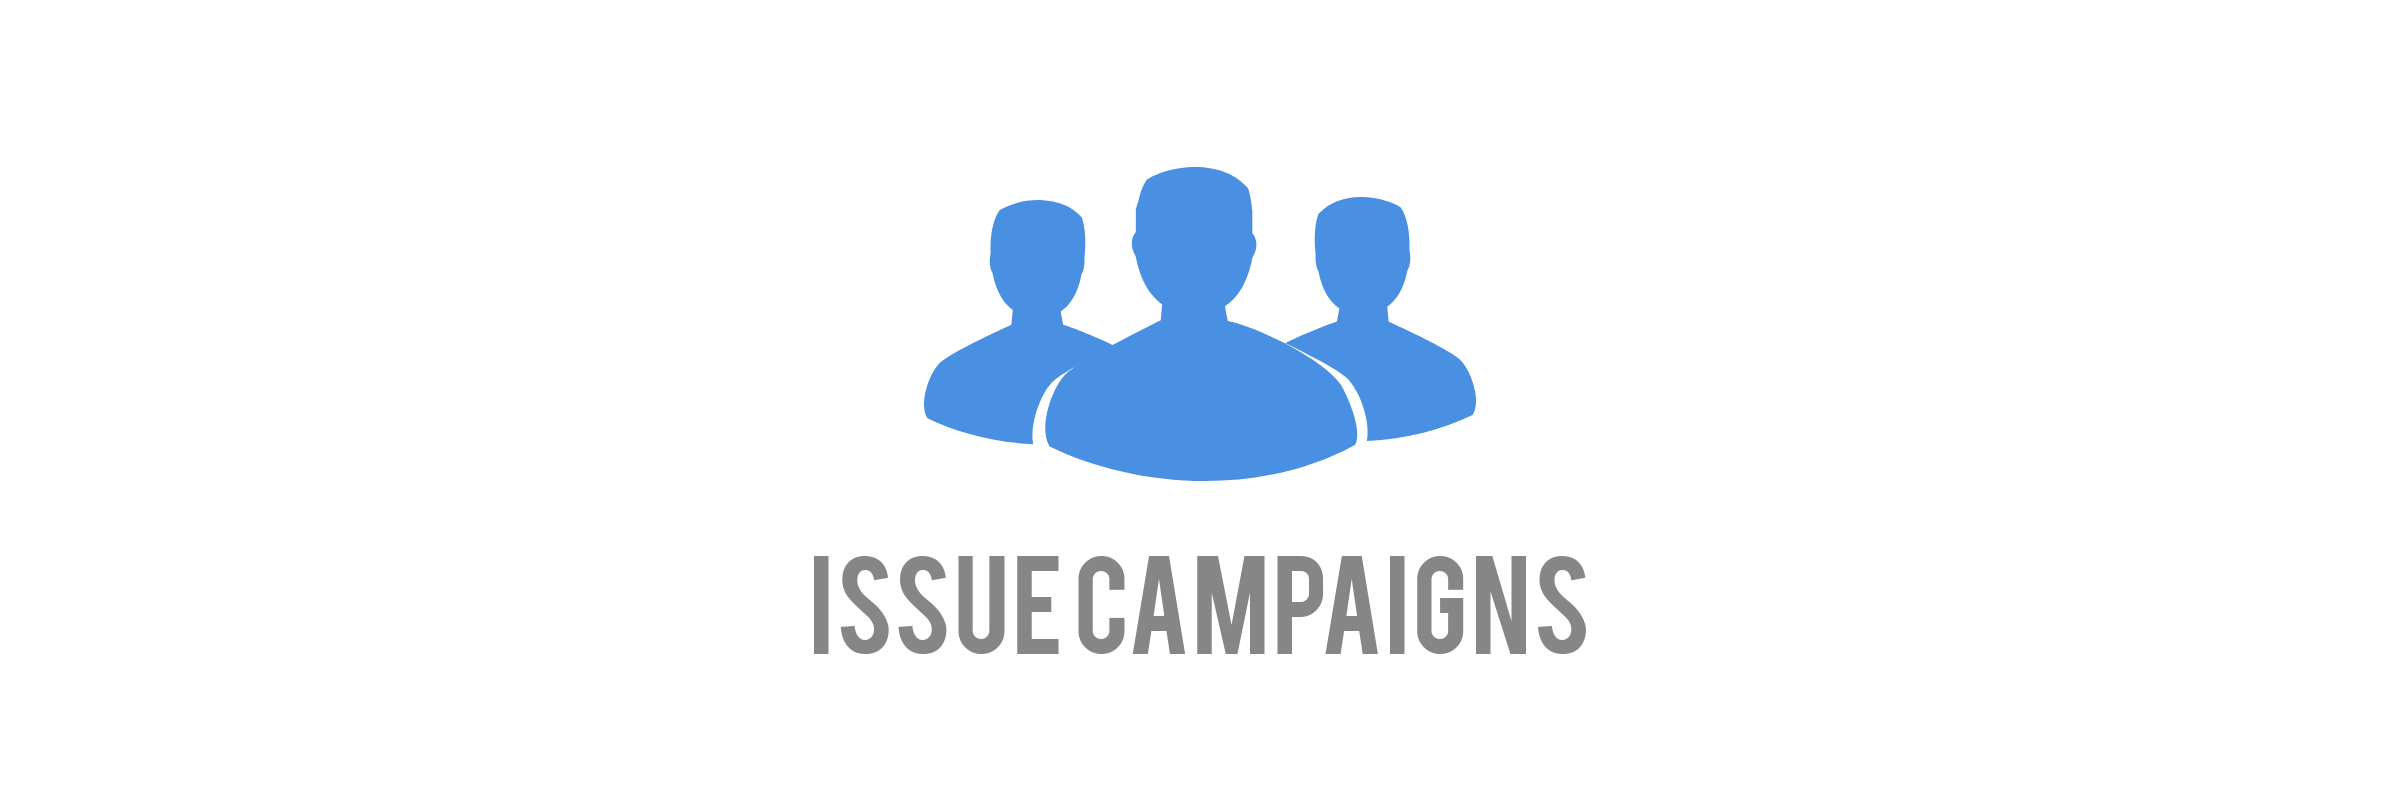 issue-campaigns-icon.png